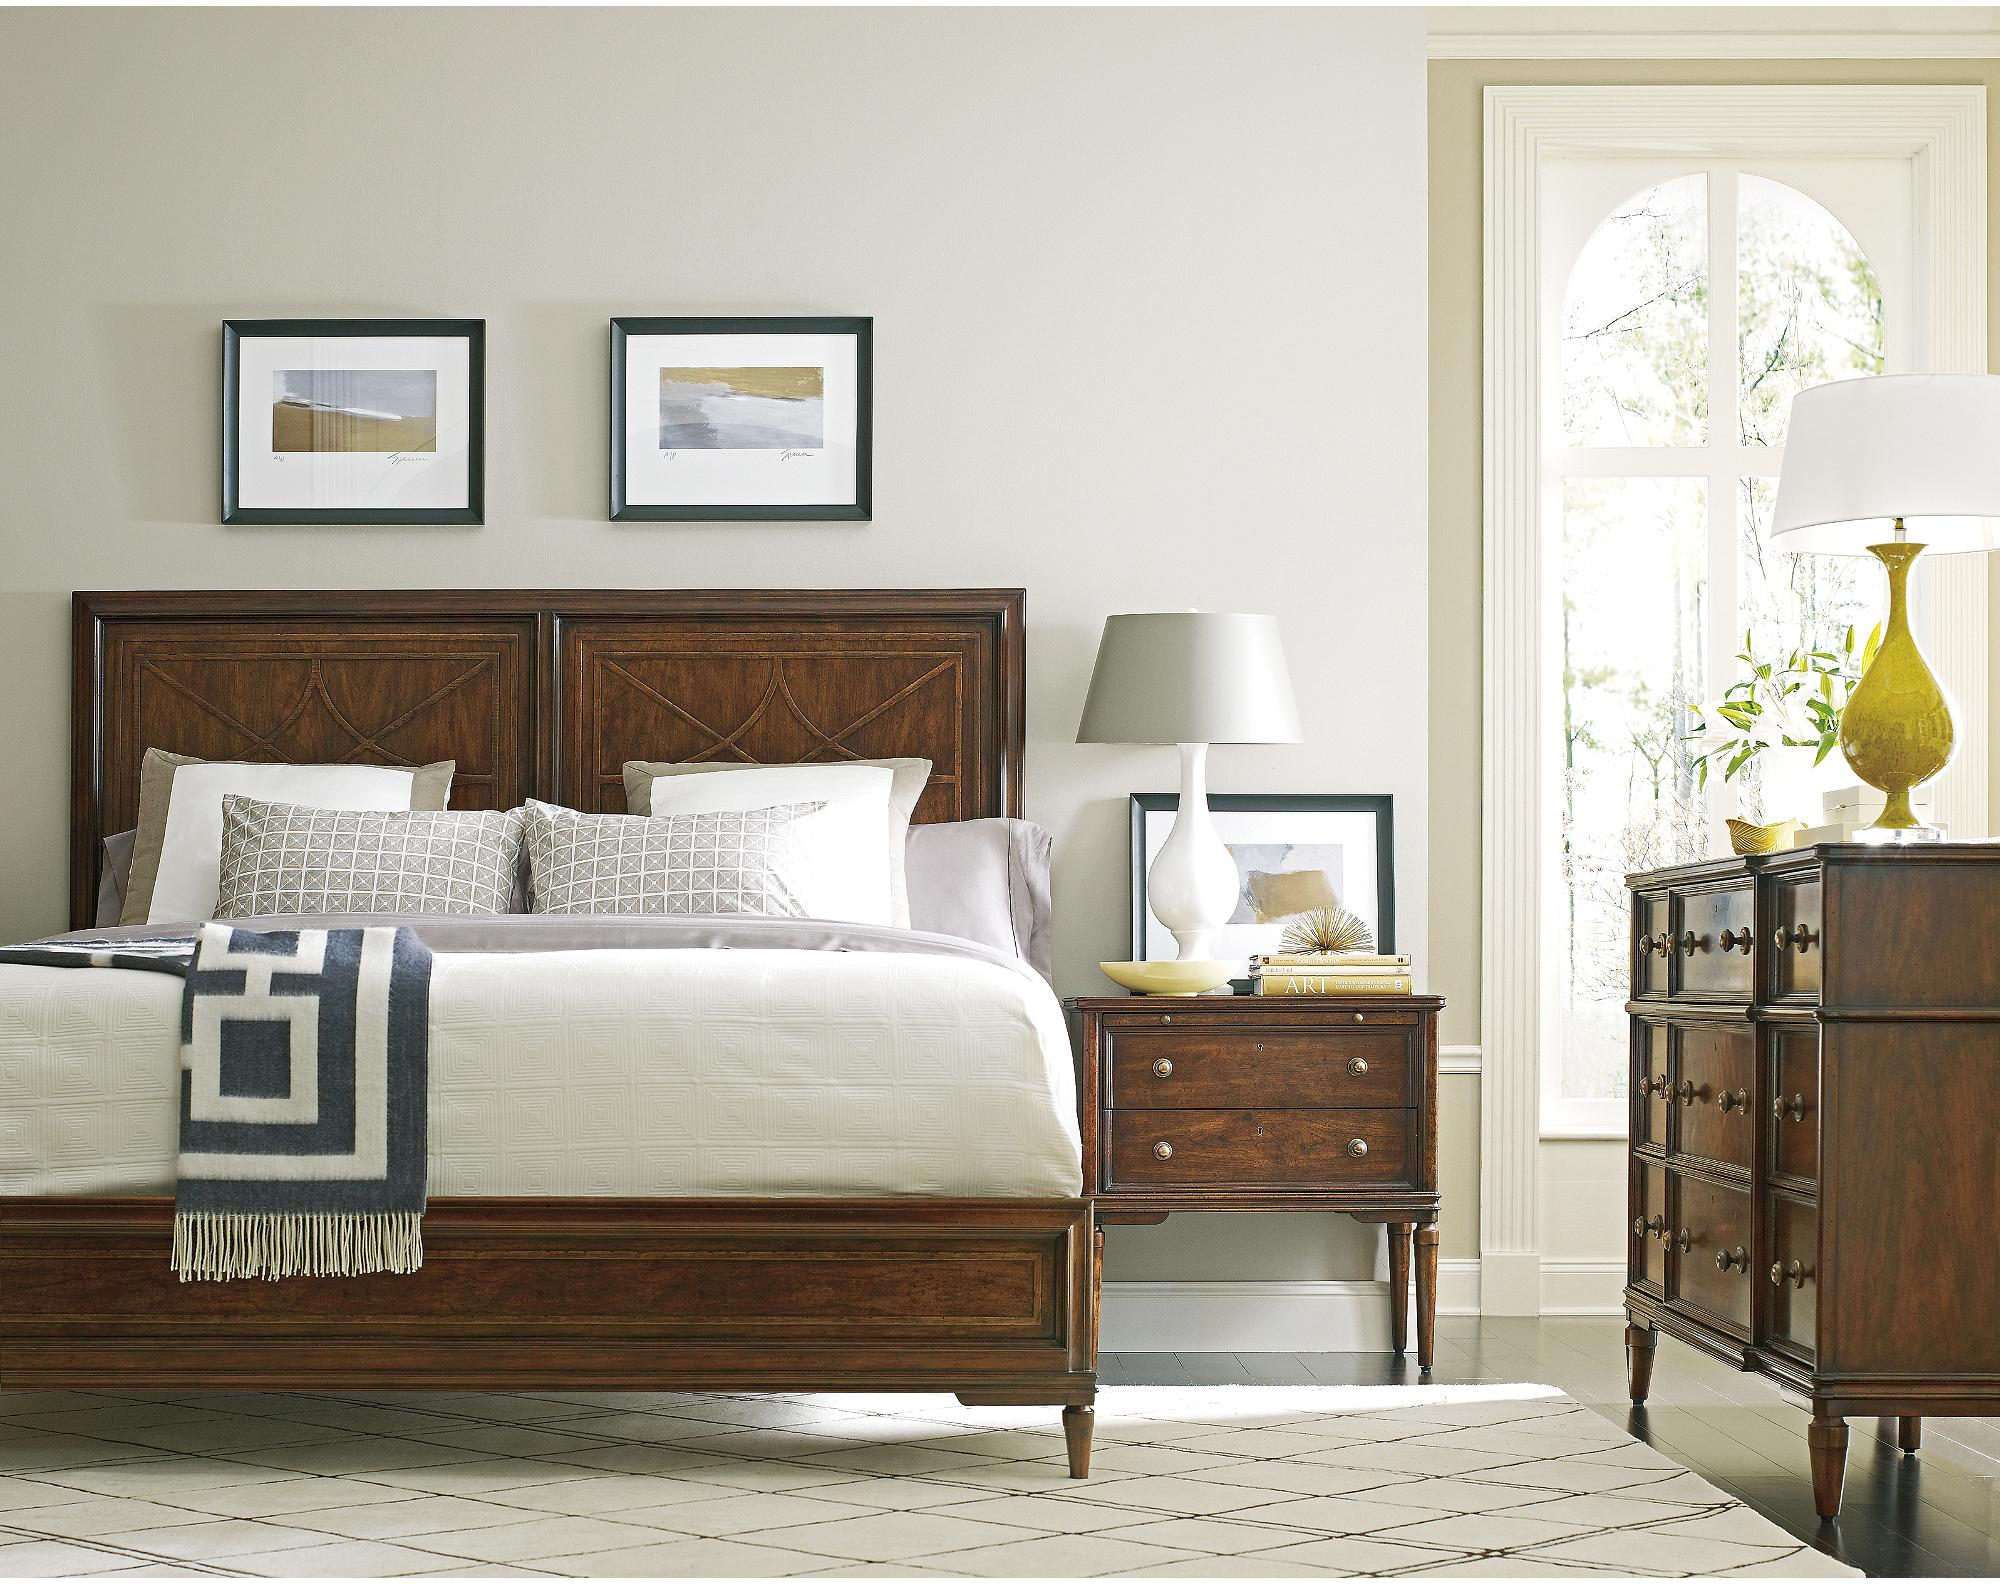 Stanley Furniture The Classic Portfolio - Vintage Queen Bedroom Group - Item Number: 264 Q Bedroom Group 1